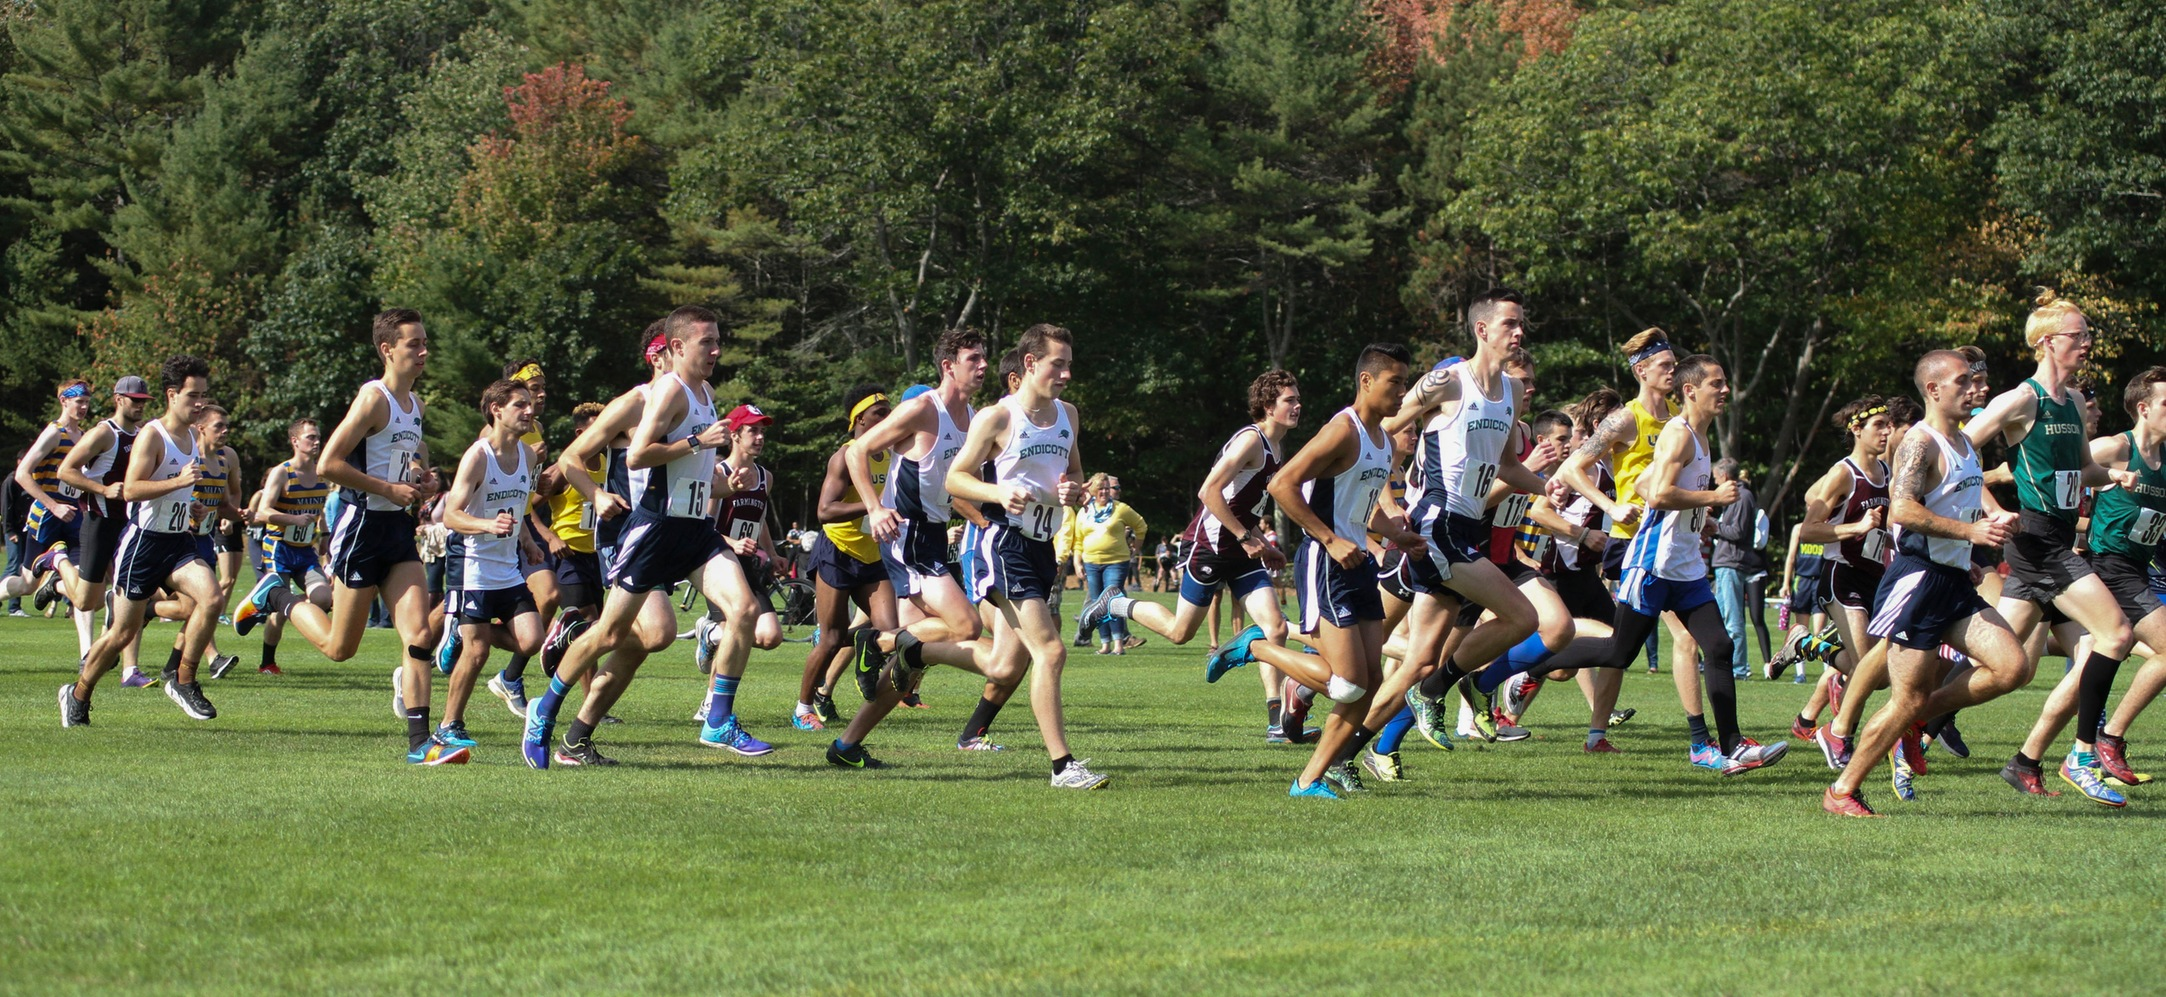 Endicott men's cross country at the start of the Bowdoin Invitational.